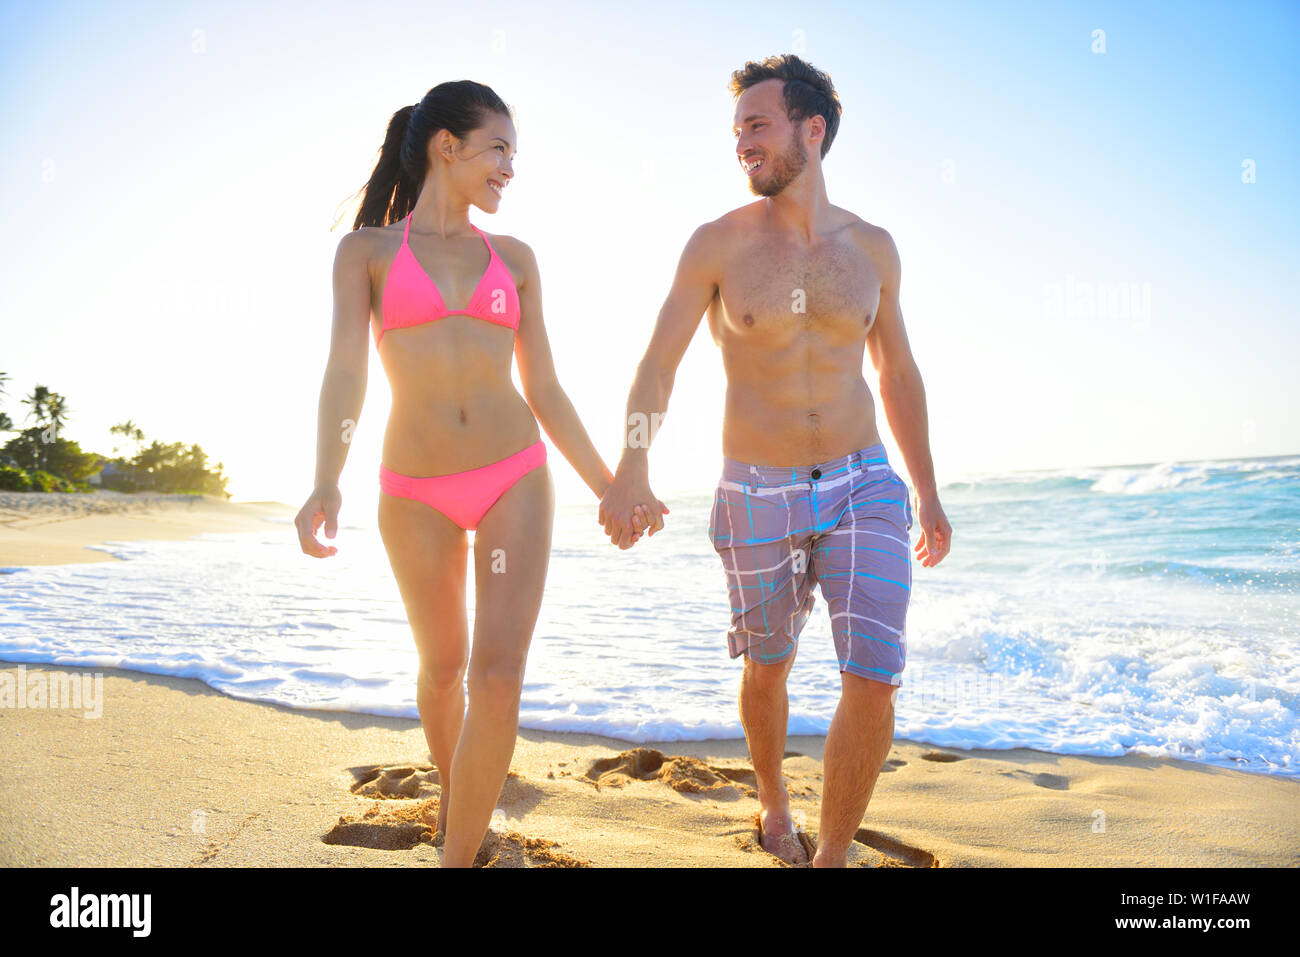 Young interracial romantic beautiful couple walking in beach sand holding hands smiling happily. Relaxed mixed race couple enjoying romance on vacation travel. Asian woman, Caucasian man. - Stock Image